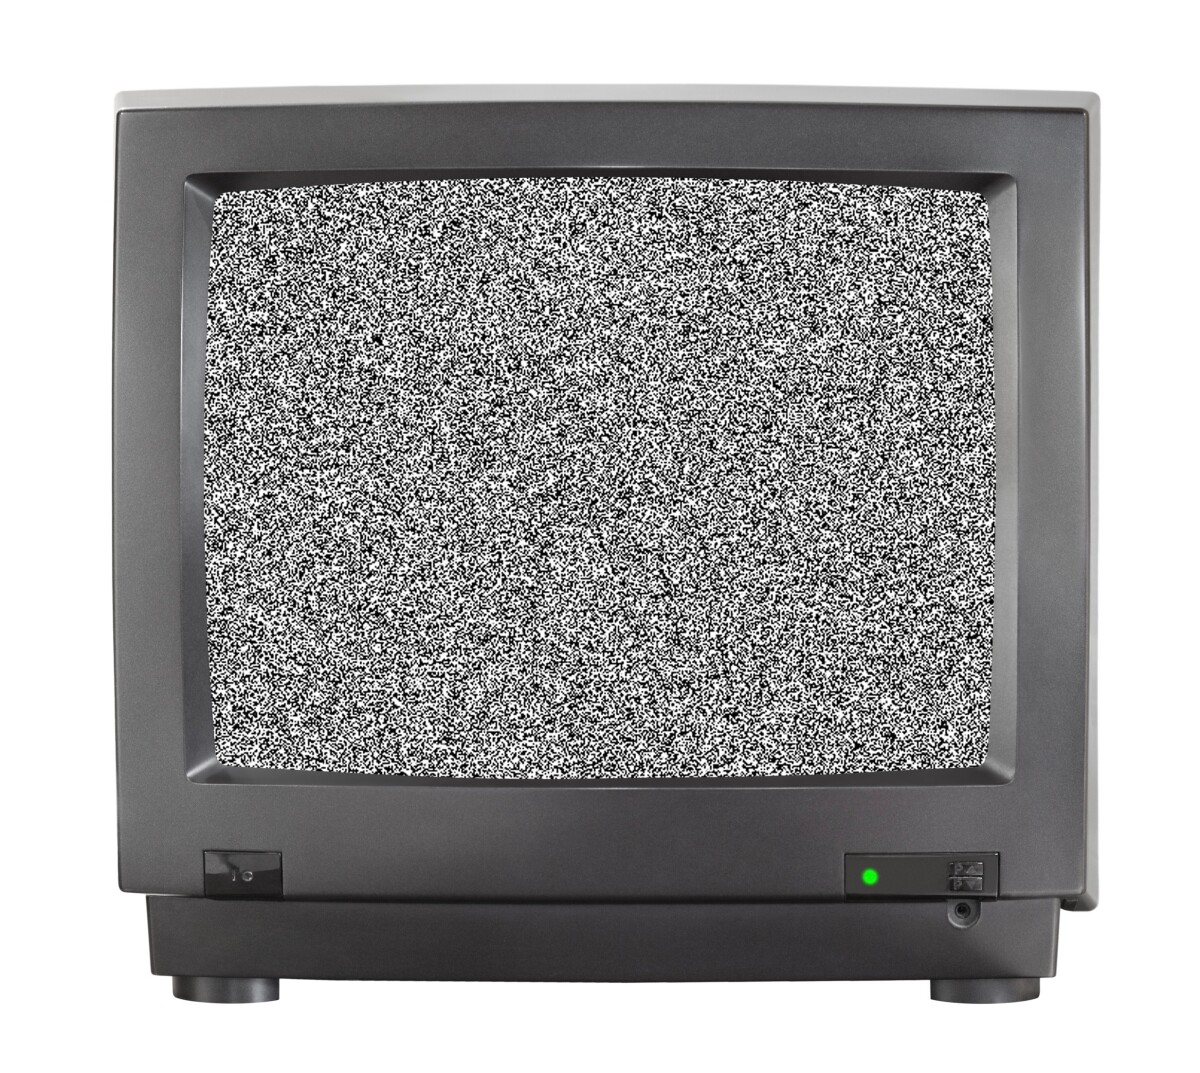 Noisy_TV._CB486169992_.jpg